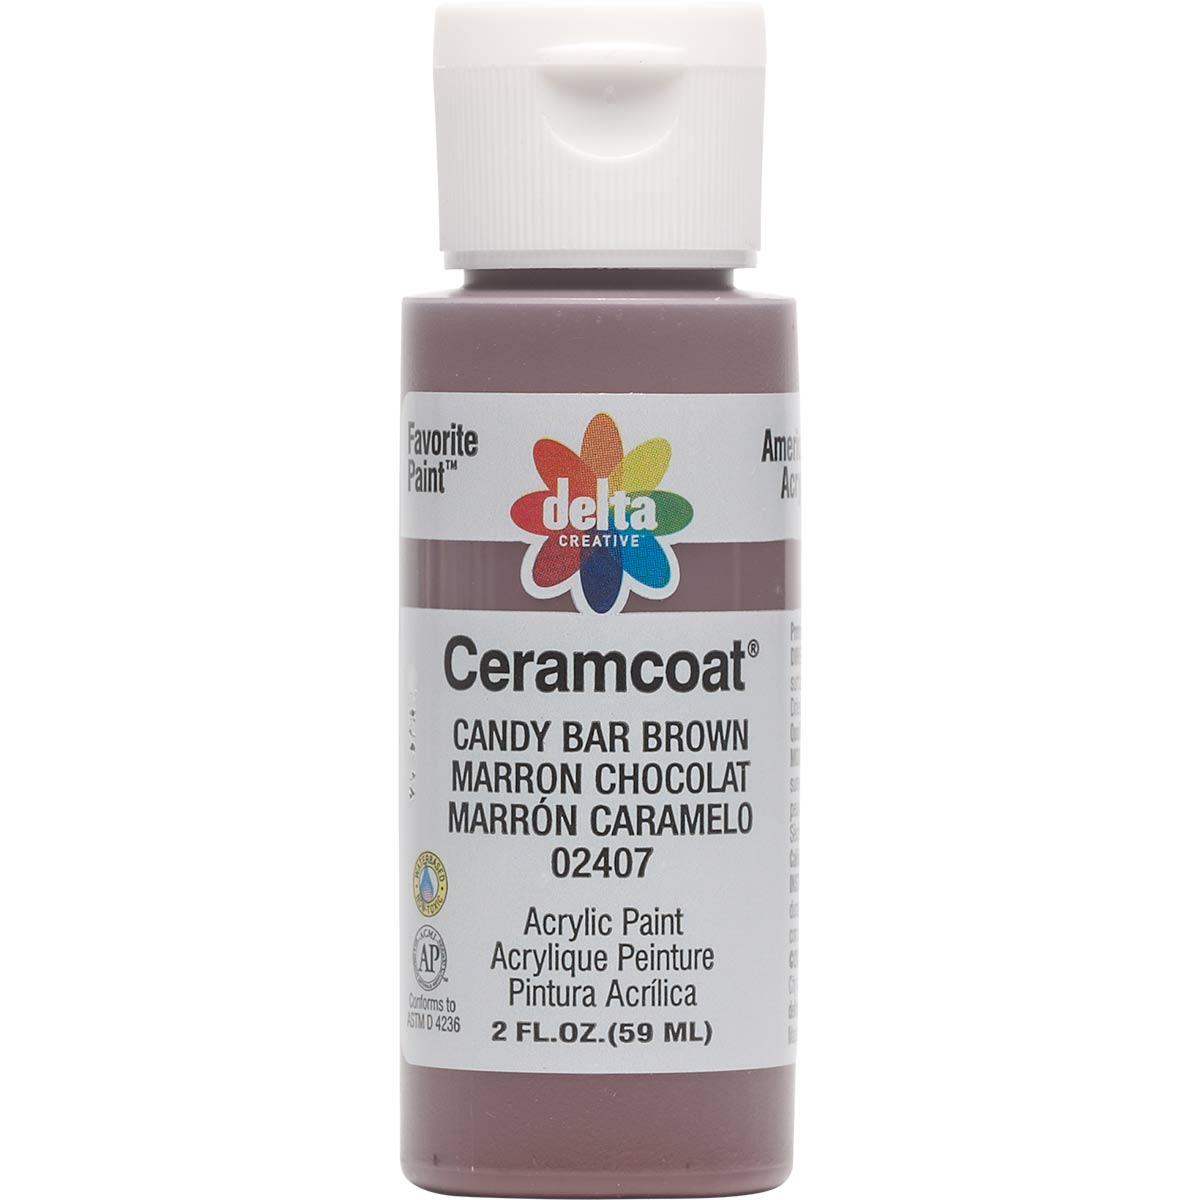 Delta Ceramcoat ® Acrylic Paint - Candy Bar Brown, 2 oz. - 024070202W